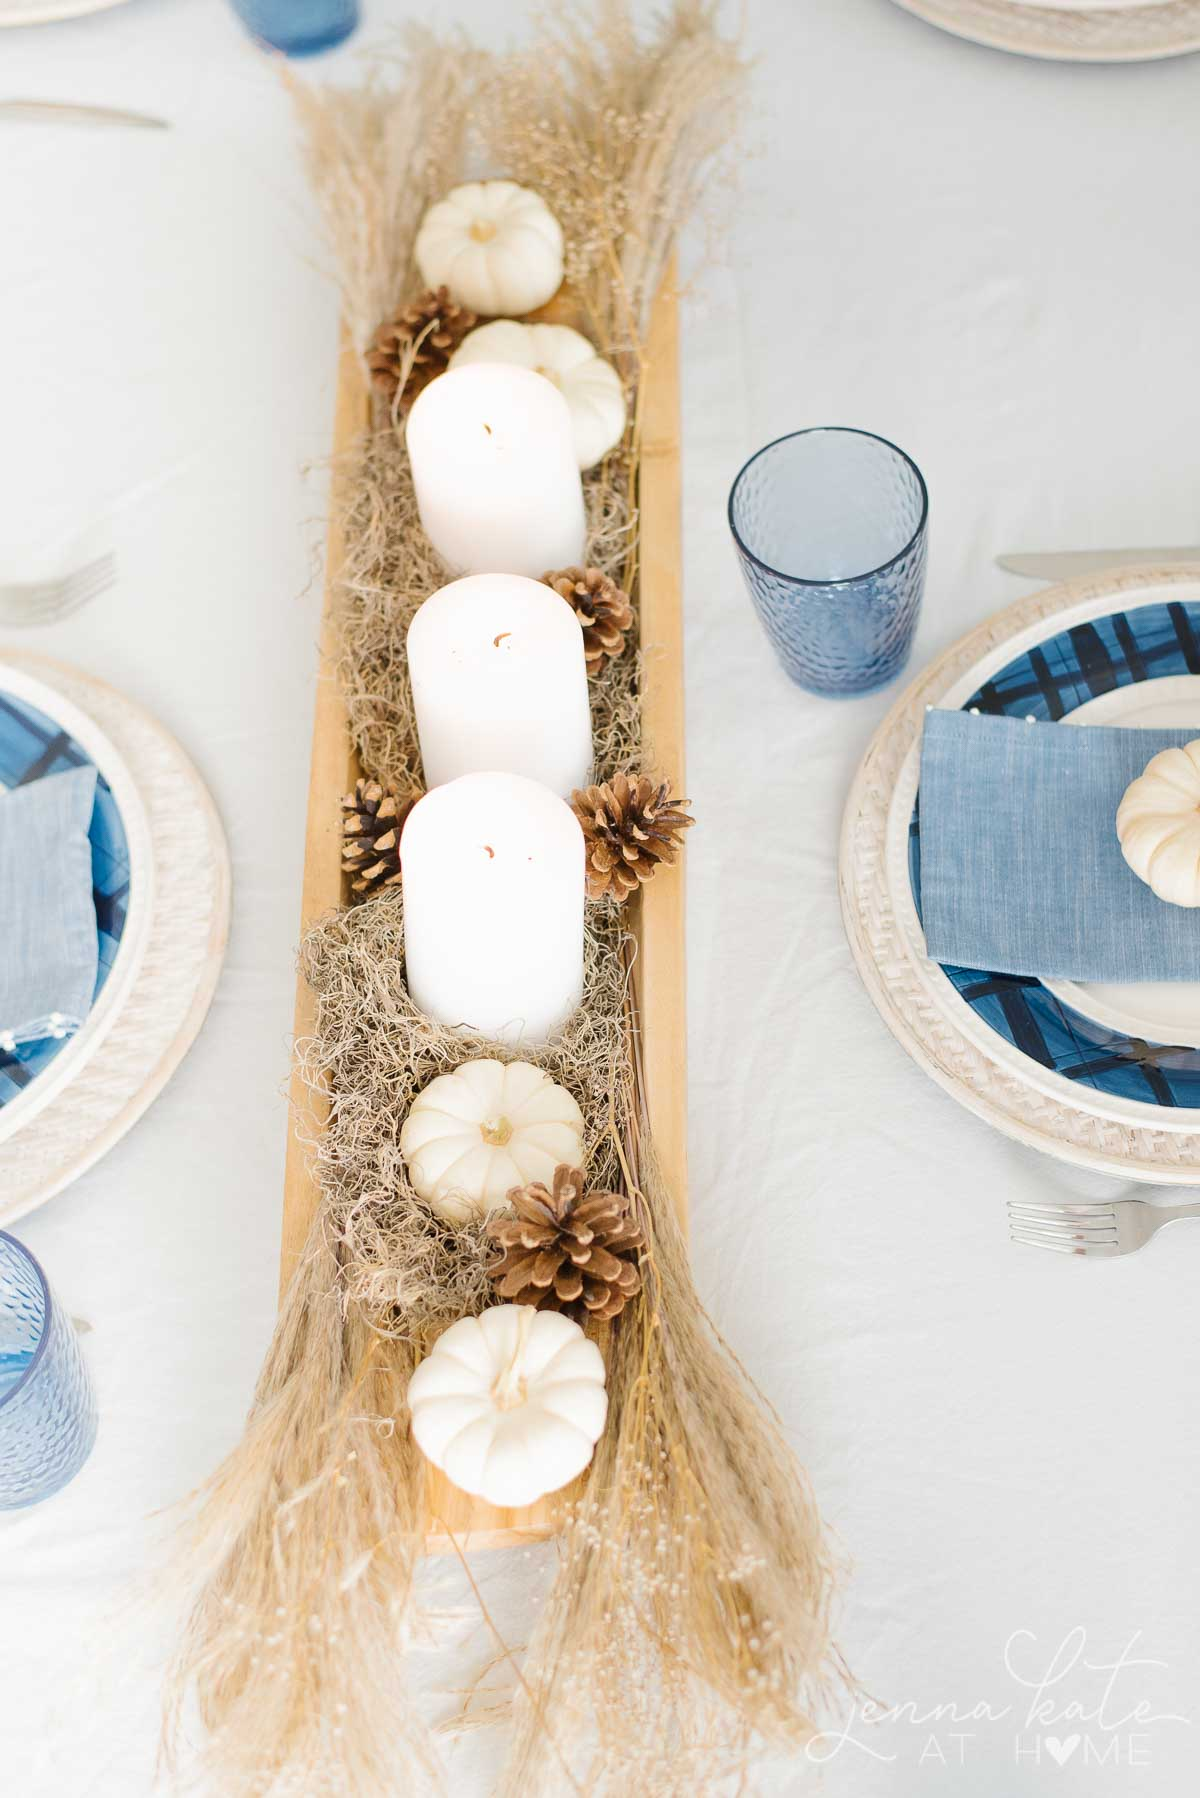 White candles and other neutral colored nature inspired objects in the centerpiece